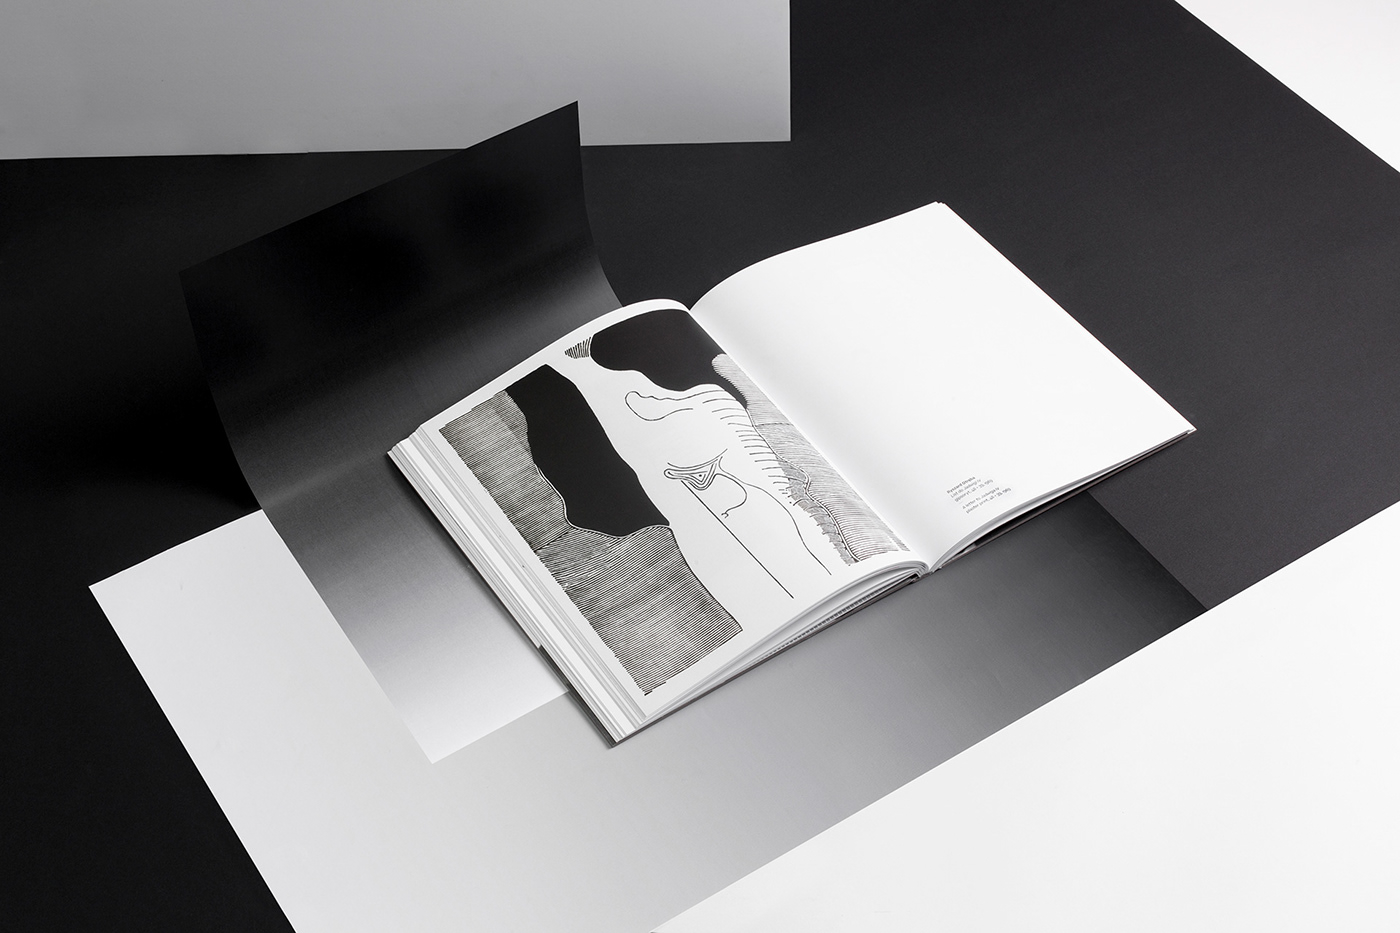 book cover design editorial Exhibition  graphic Layout Photography  publication typography